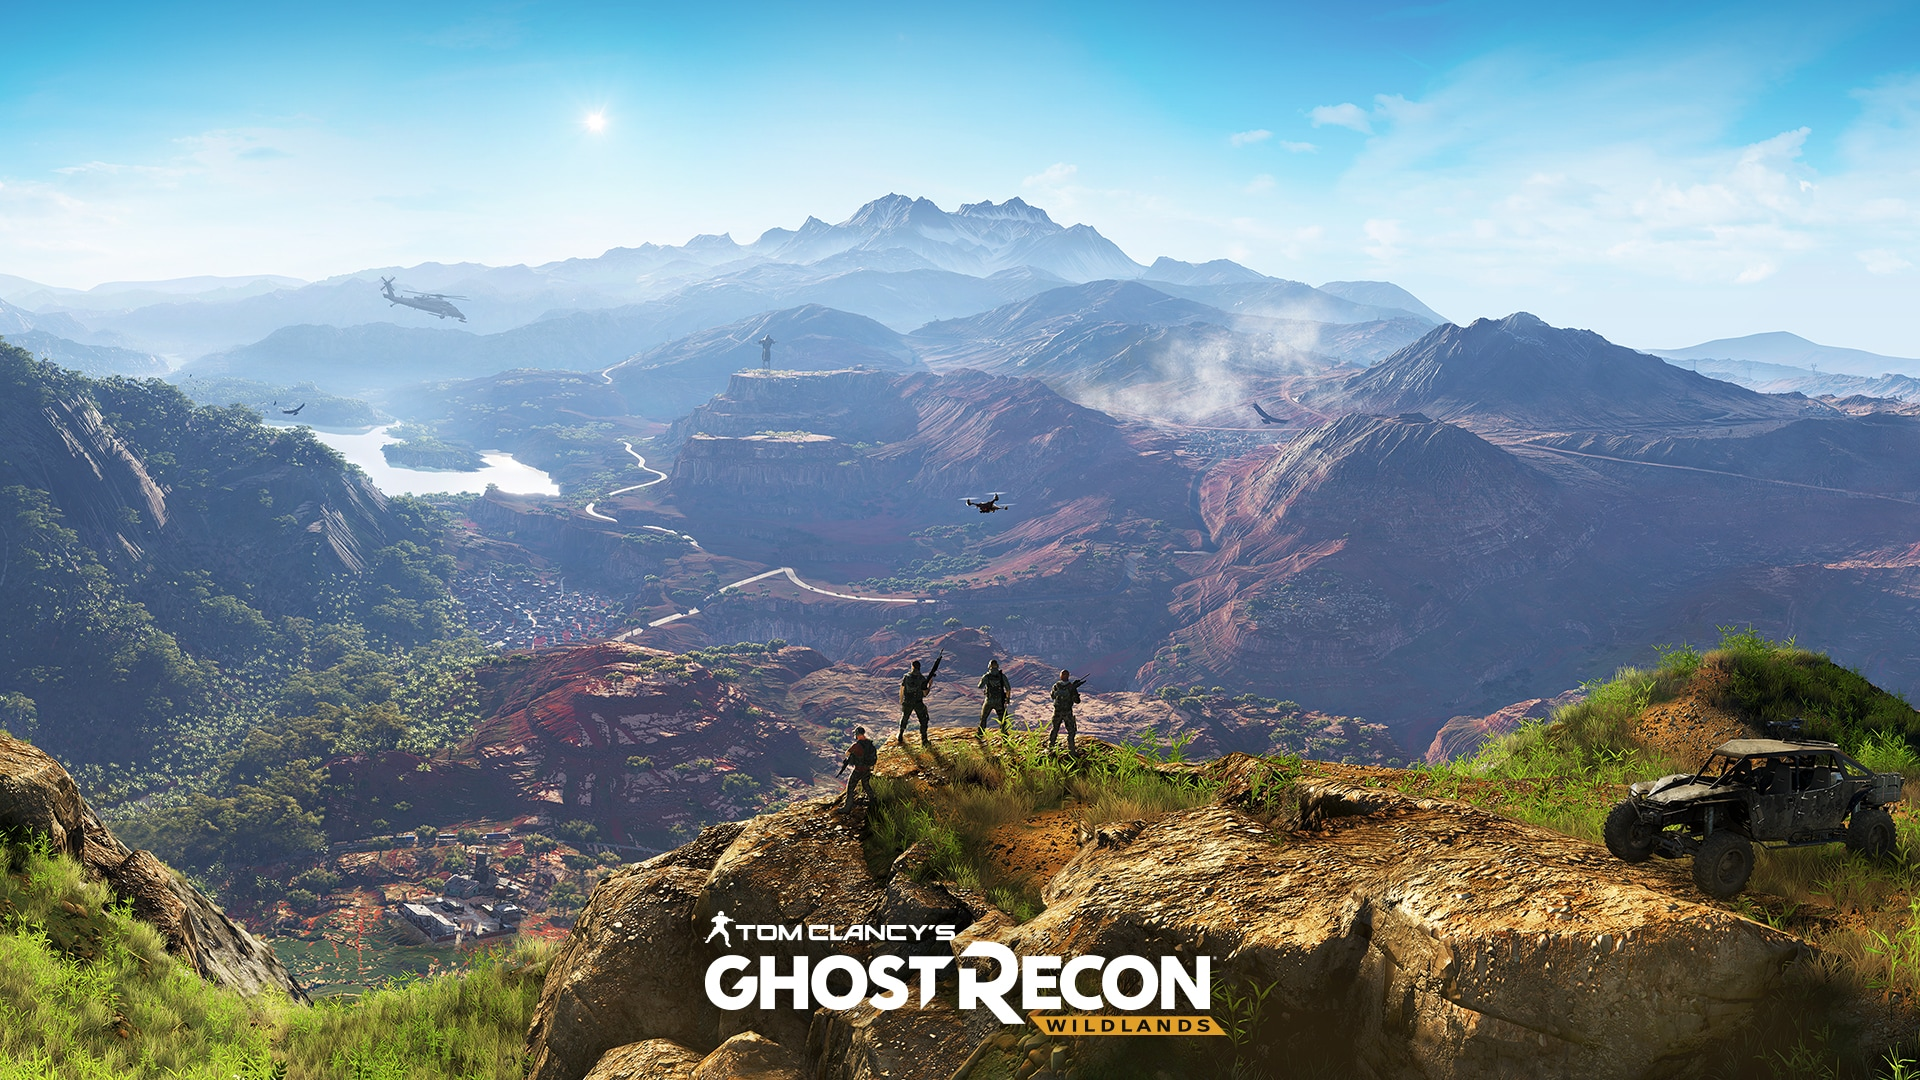 https://ubistatic19-a.akamaihd.net/resource/fr-FR/game/ghost-recon/grw/grw_artwork_1_250756.jpg